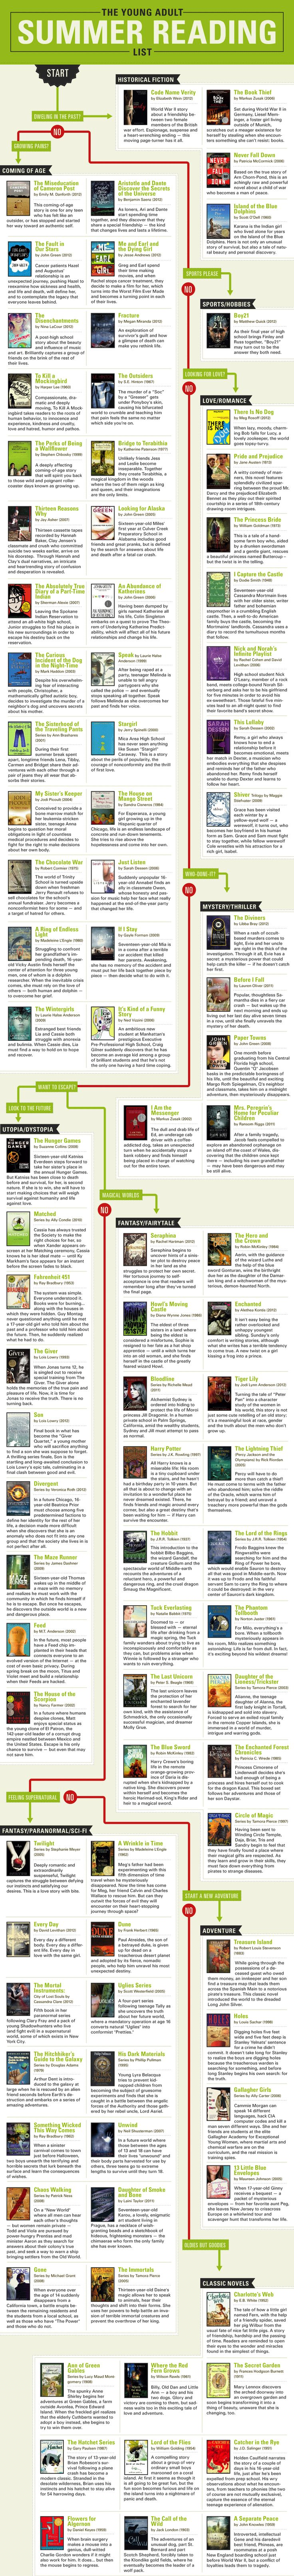 """It's called """"95 Young Adult Books To Read This Summer Instead Of Reading 'Harry Potter' AGAIN,"""" and while I don't see anything wrong with reading Harry Potter AGAIN, I also see a lot of things on this list that I've either liked or wanted to read."""